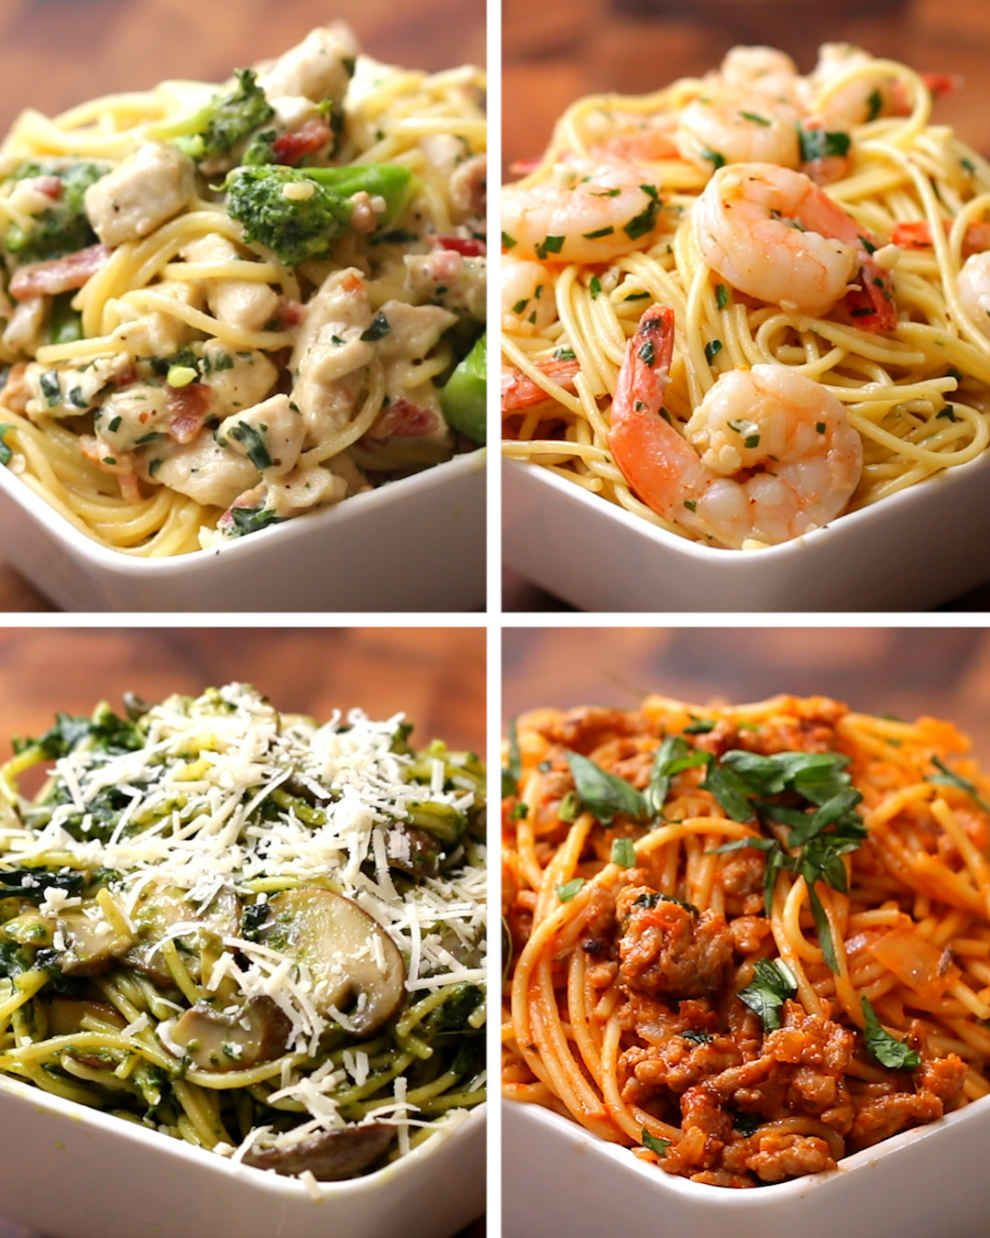 Here Are Four Heavenly Easy Ways To Make Spaghetti Pasta Dishes